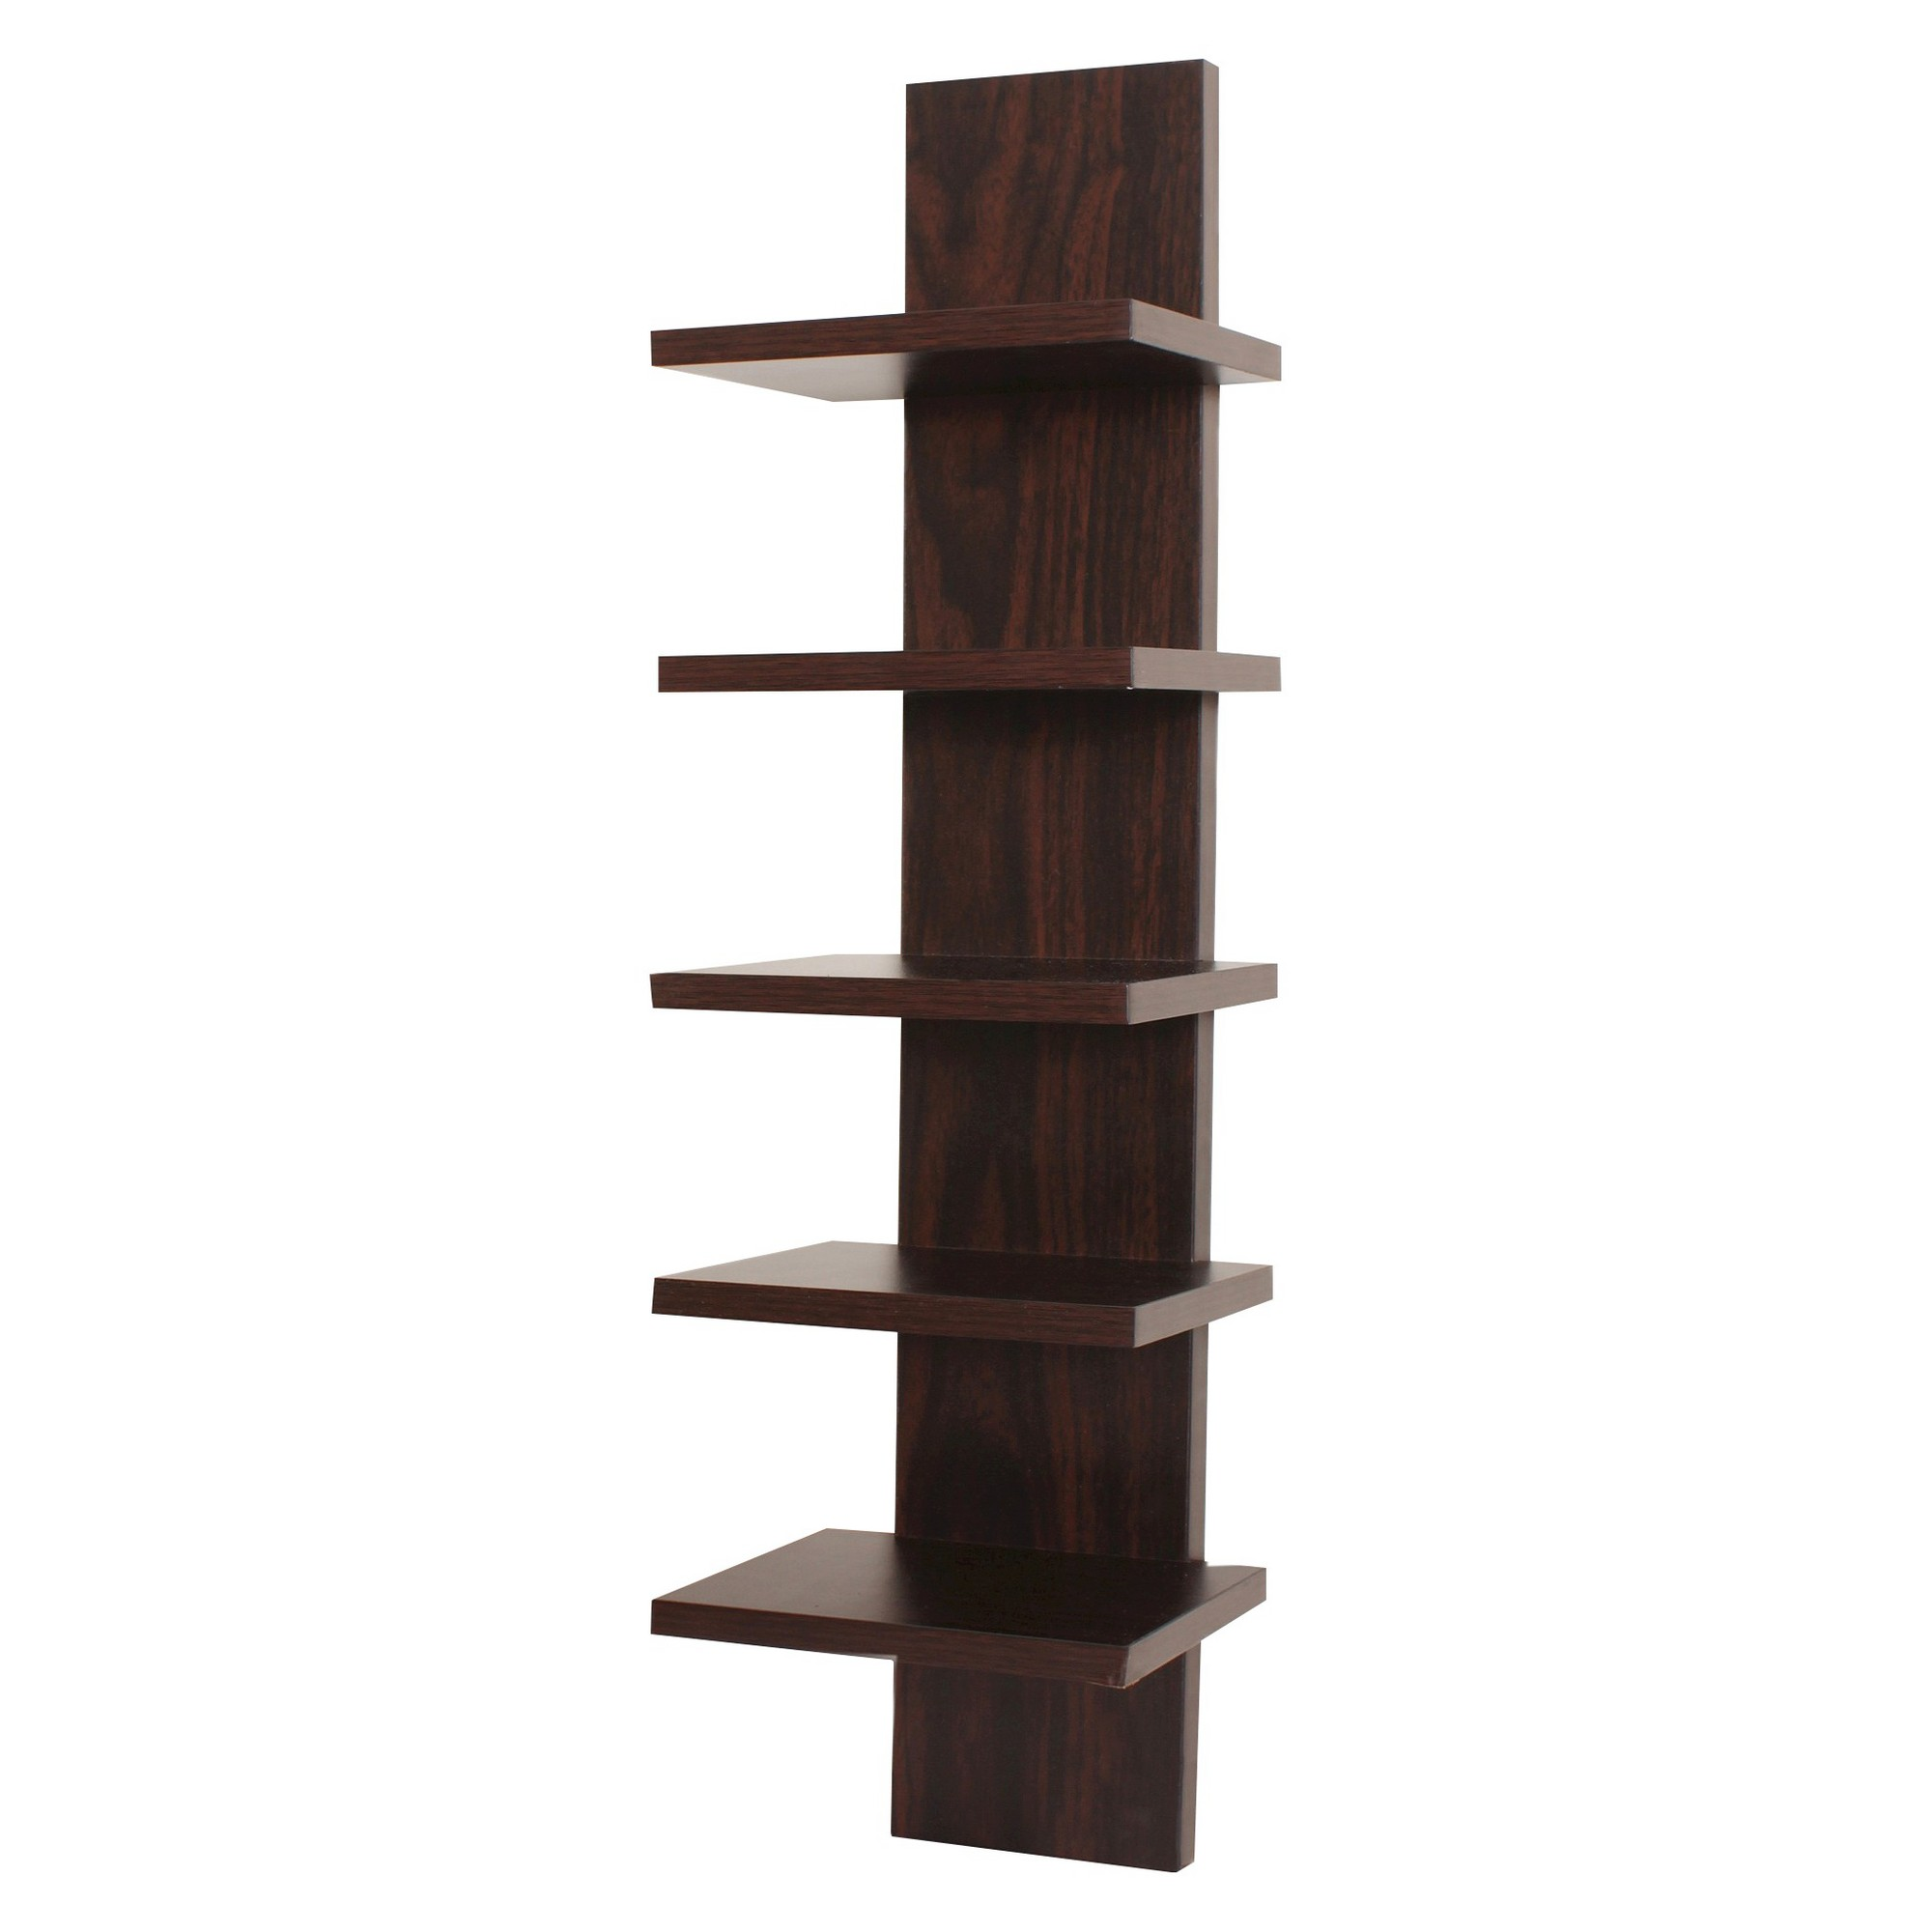 Spine Wall Shelf Brown Decorative Wall Shelf In 2019 Wall